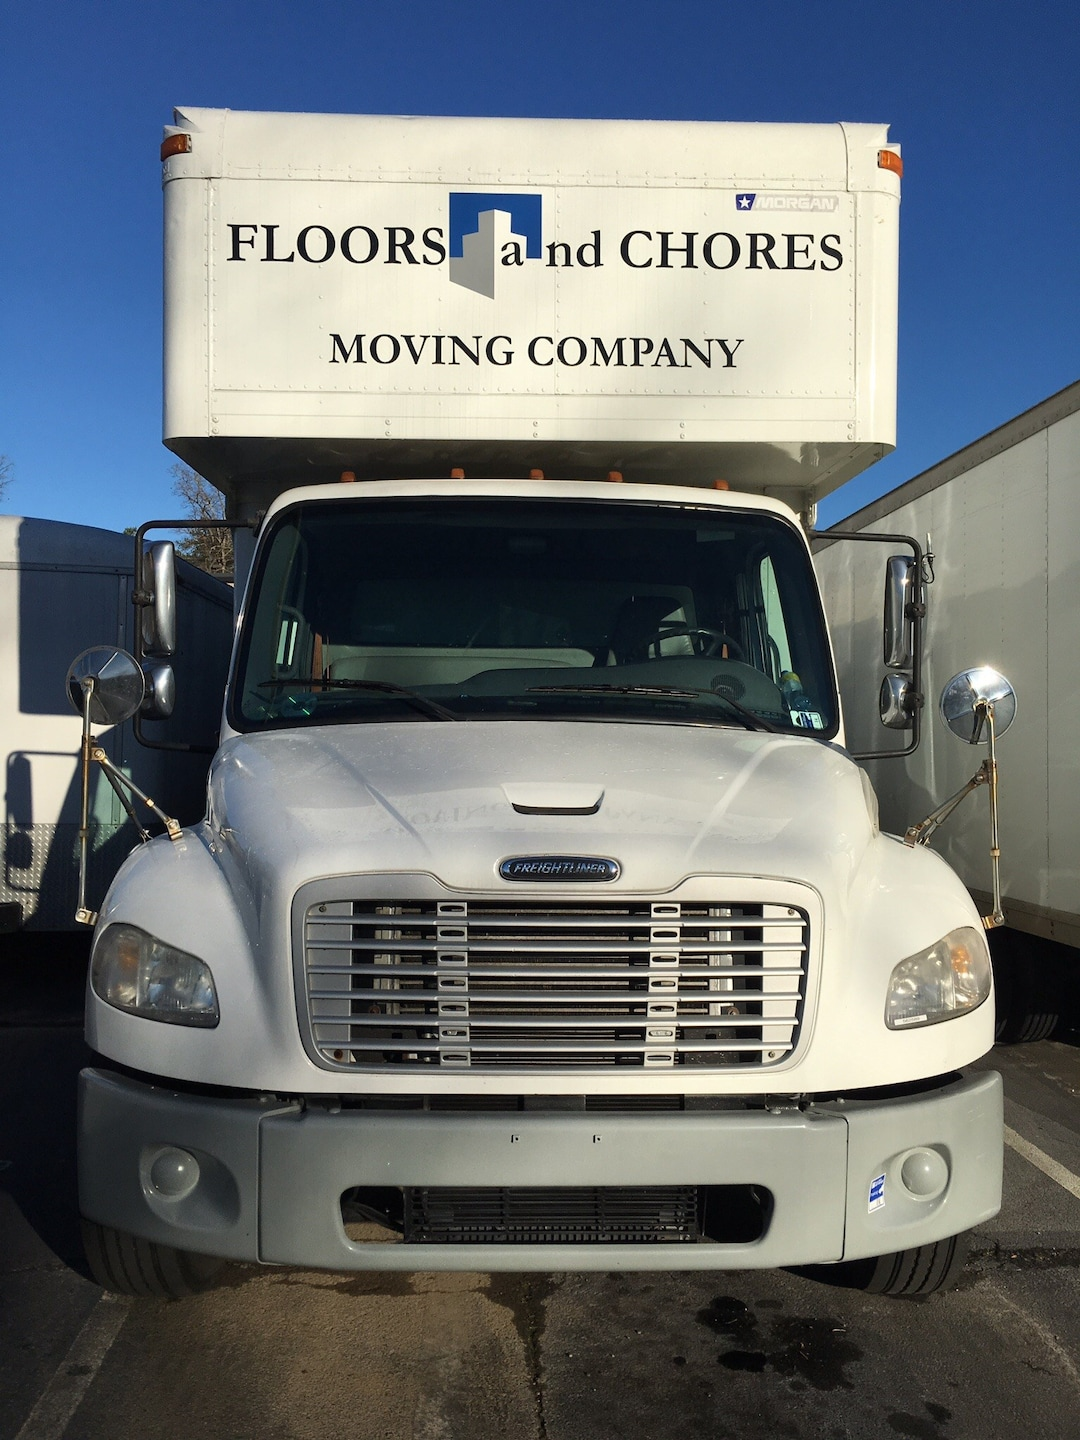 Floors & Chores Movers Loading Unloading Helpers